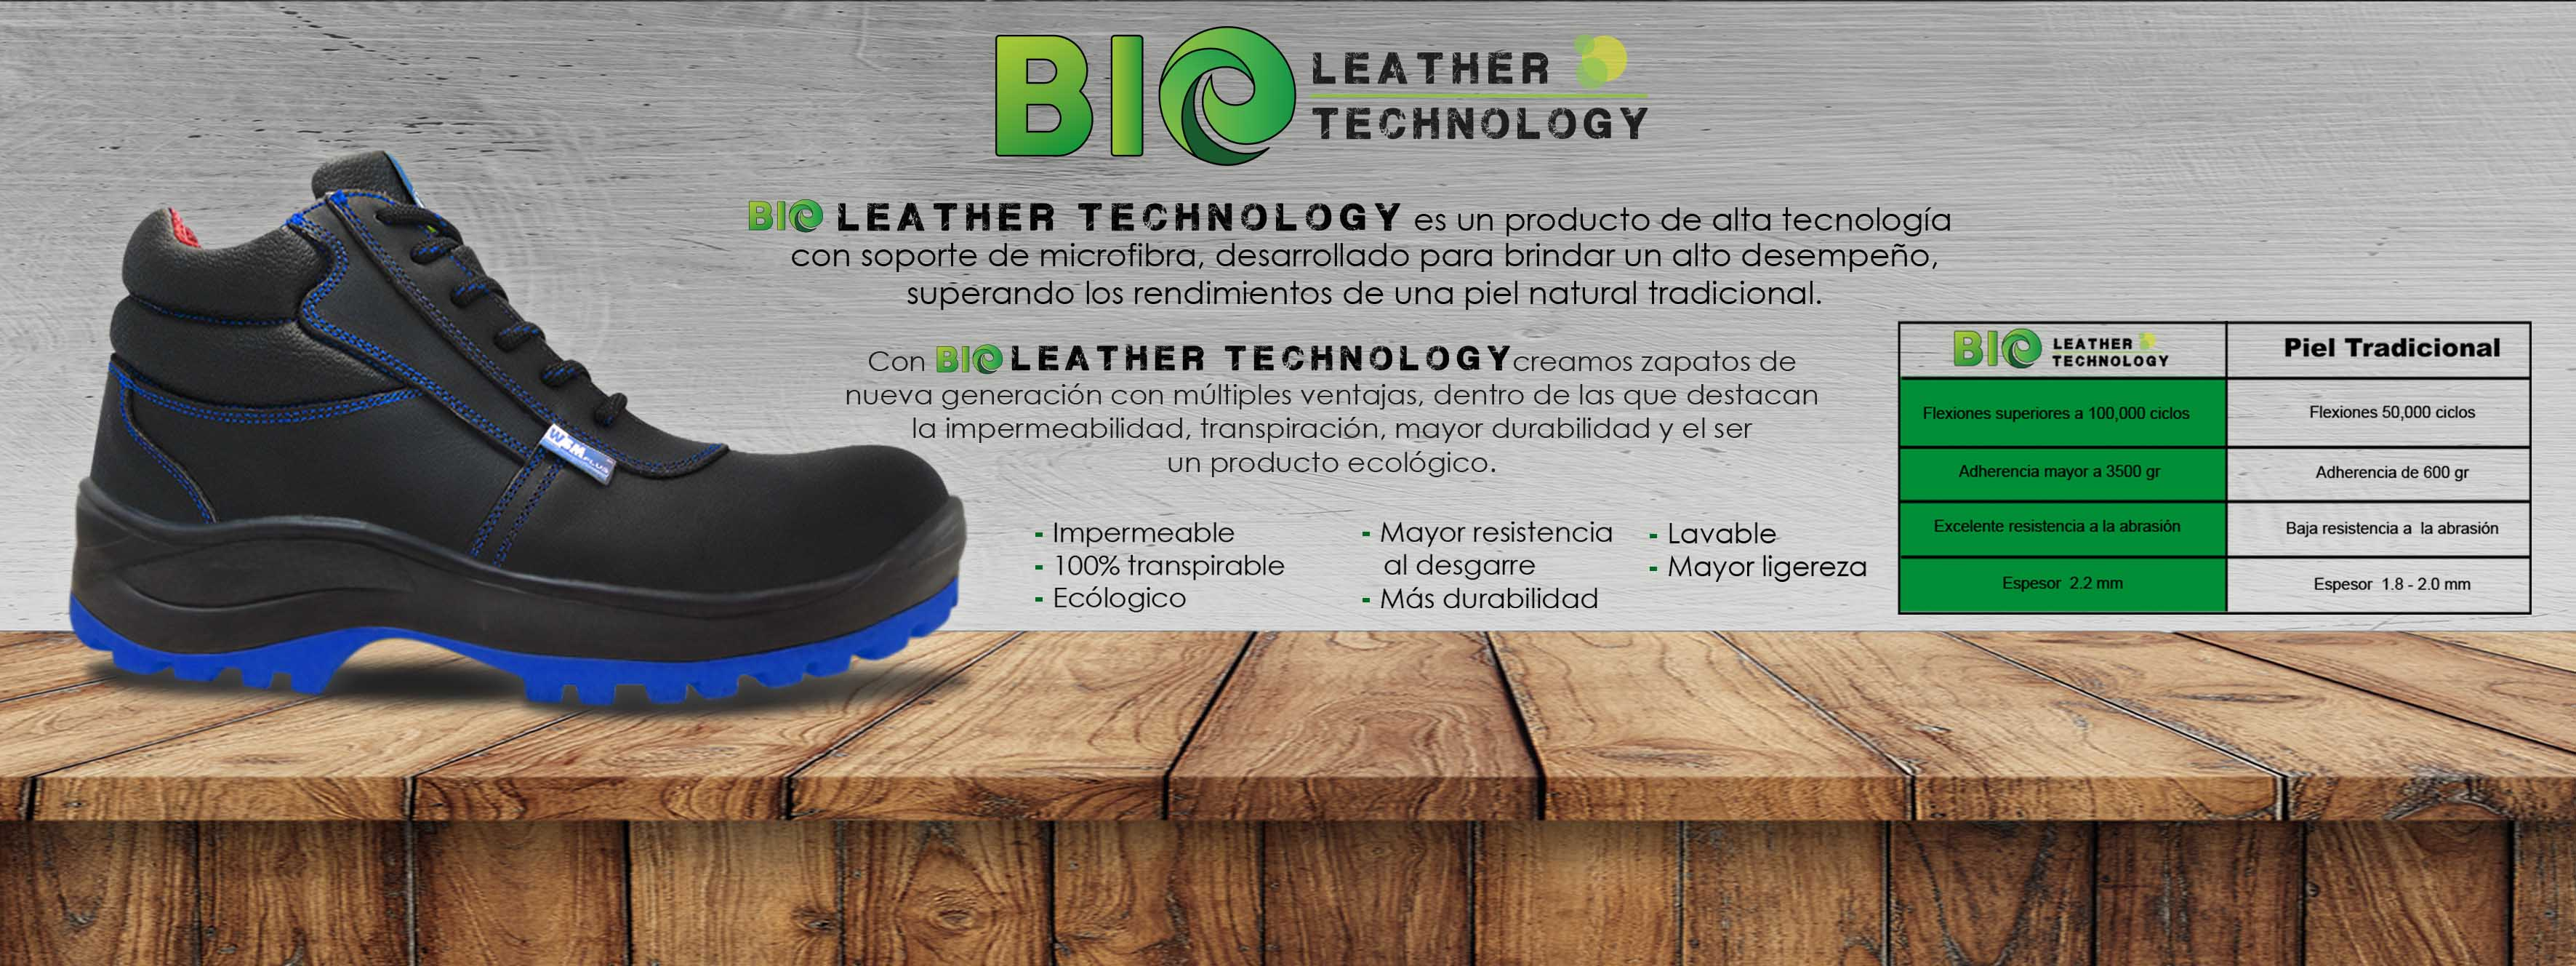 BIO Leather Technology